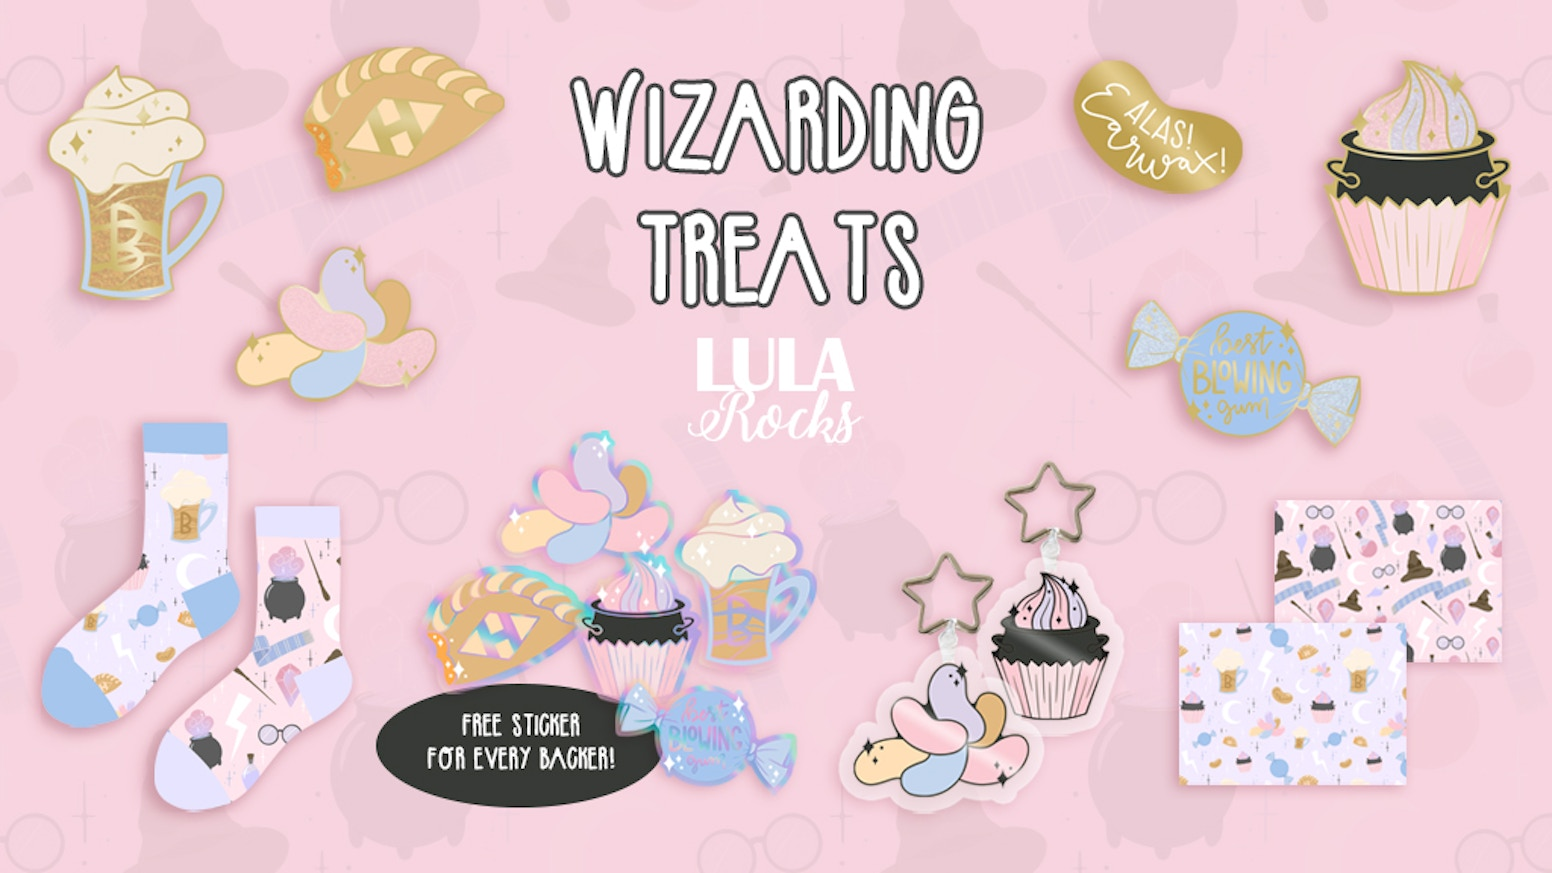 Wizarding Treats. A series of magical items including glitter enamel pins, key rings & socks!